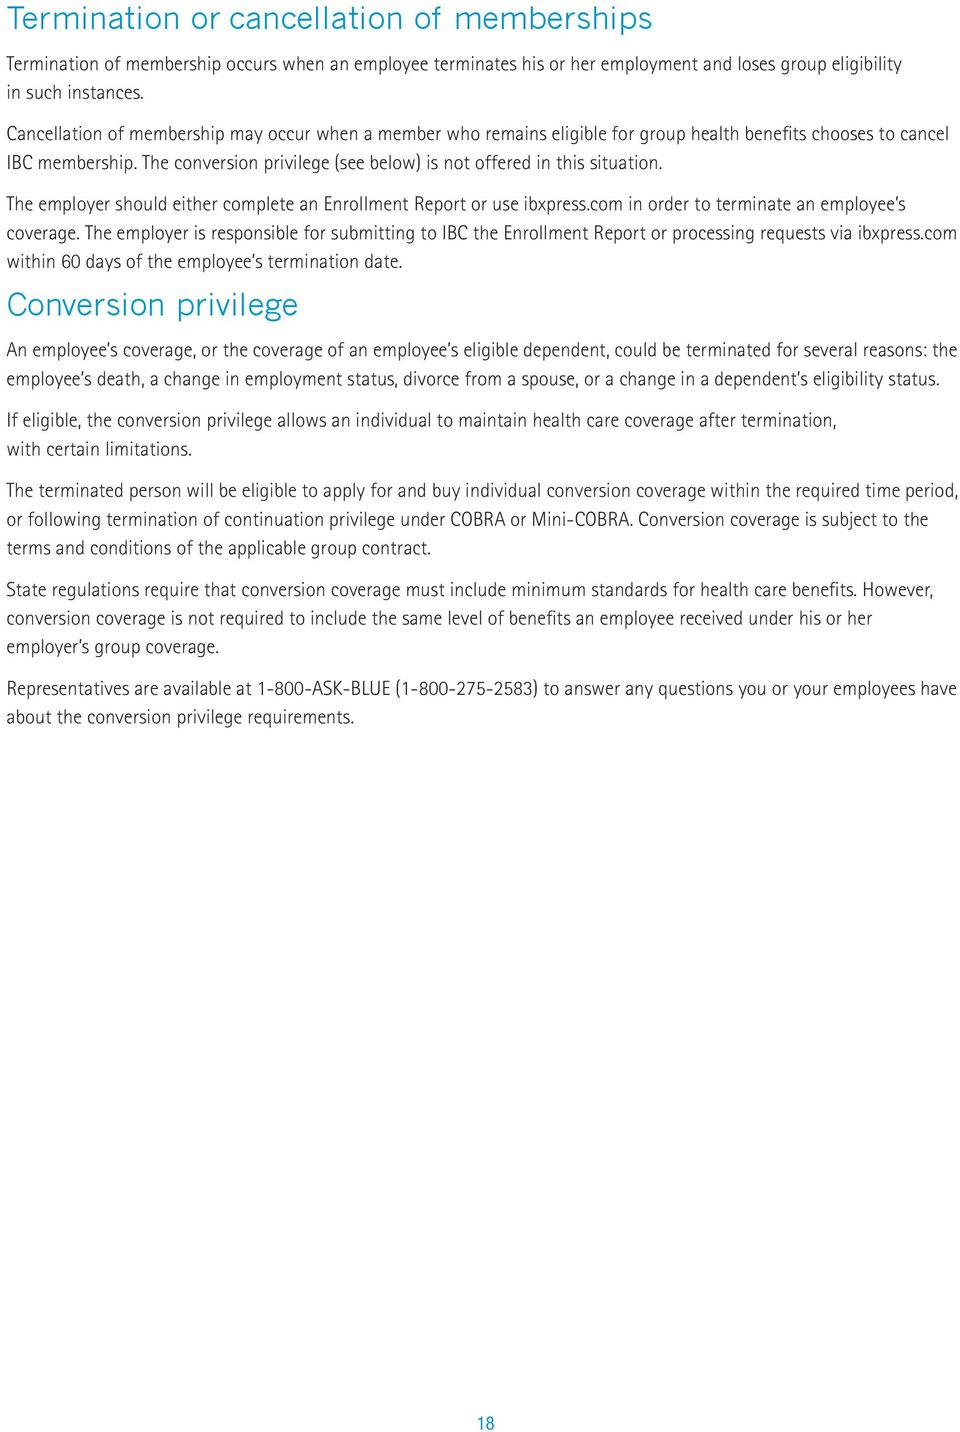 The conversion privilege (see below) is not offered in this situation. The employer should either complete an Enrollment Report or use ibxpress.com in order to terminate an employee s coverage.